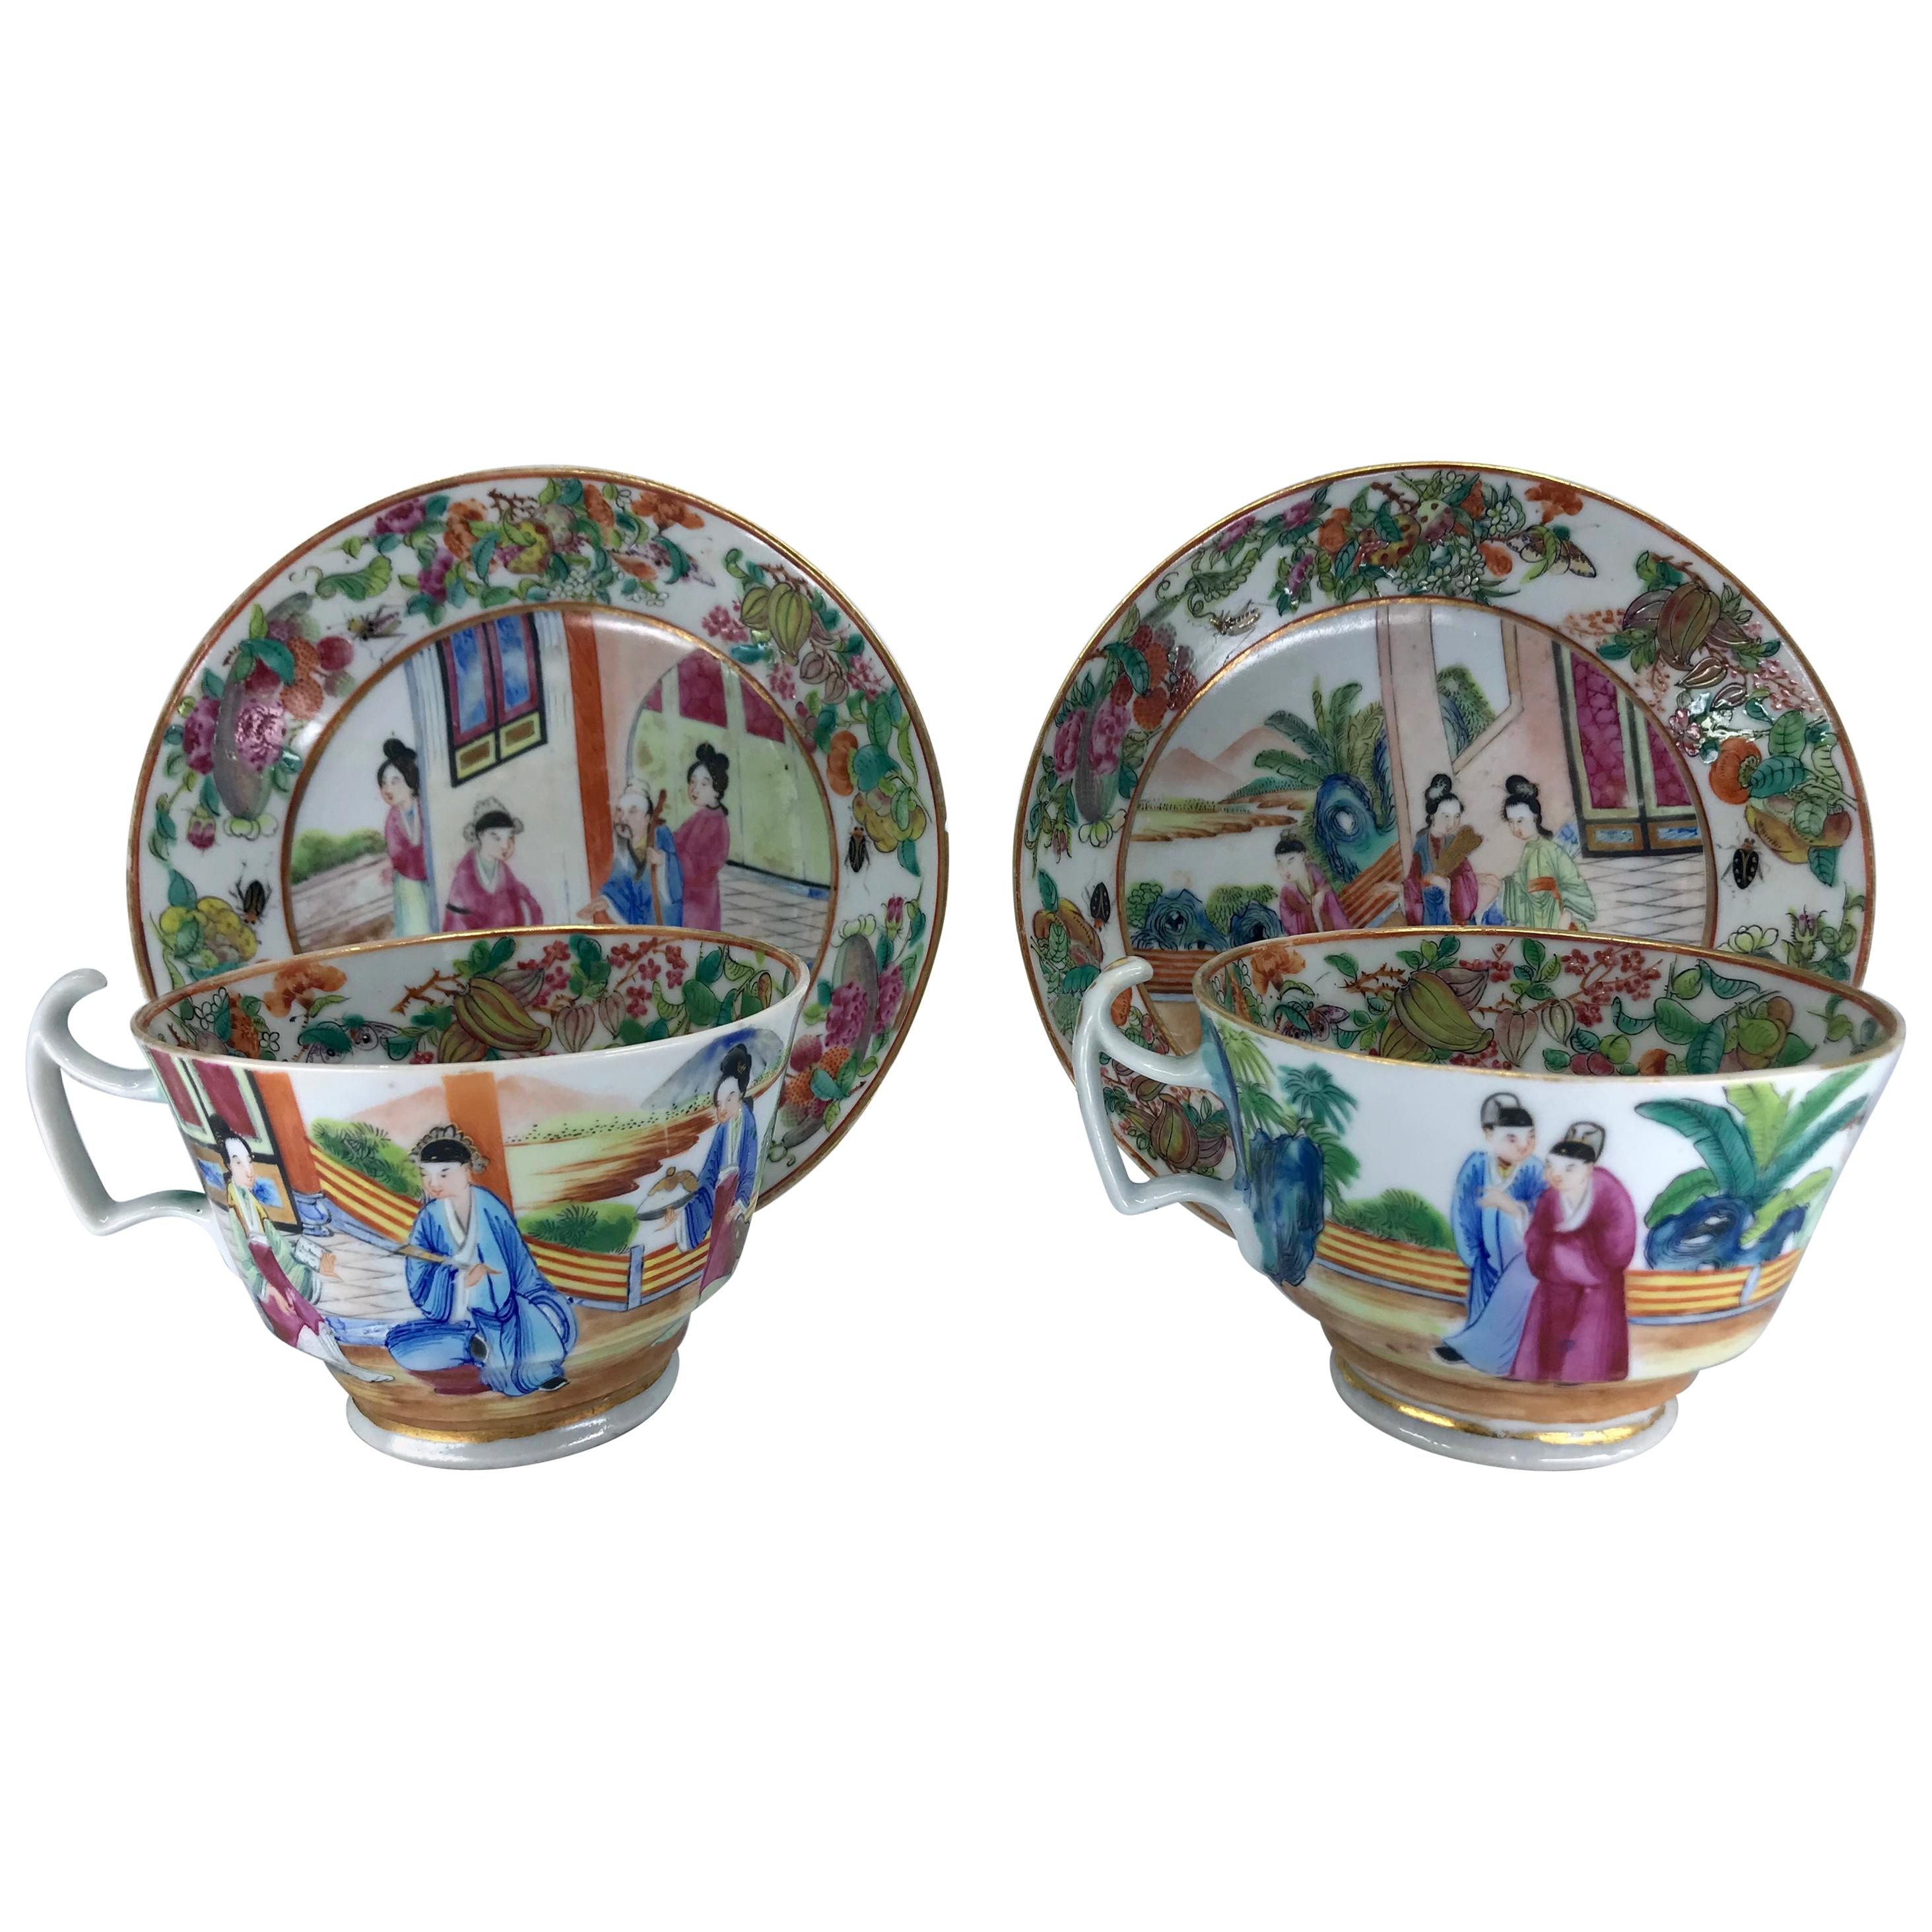 Pair of Rose Mandarin Chinese Porcelain Cups and Saucers